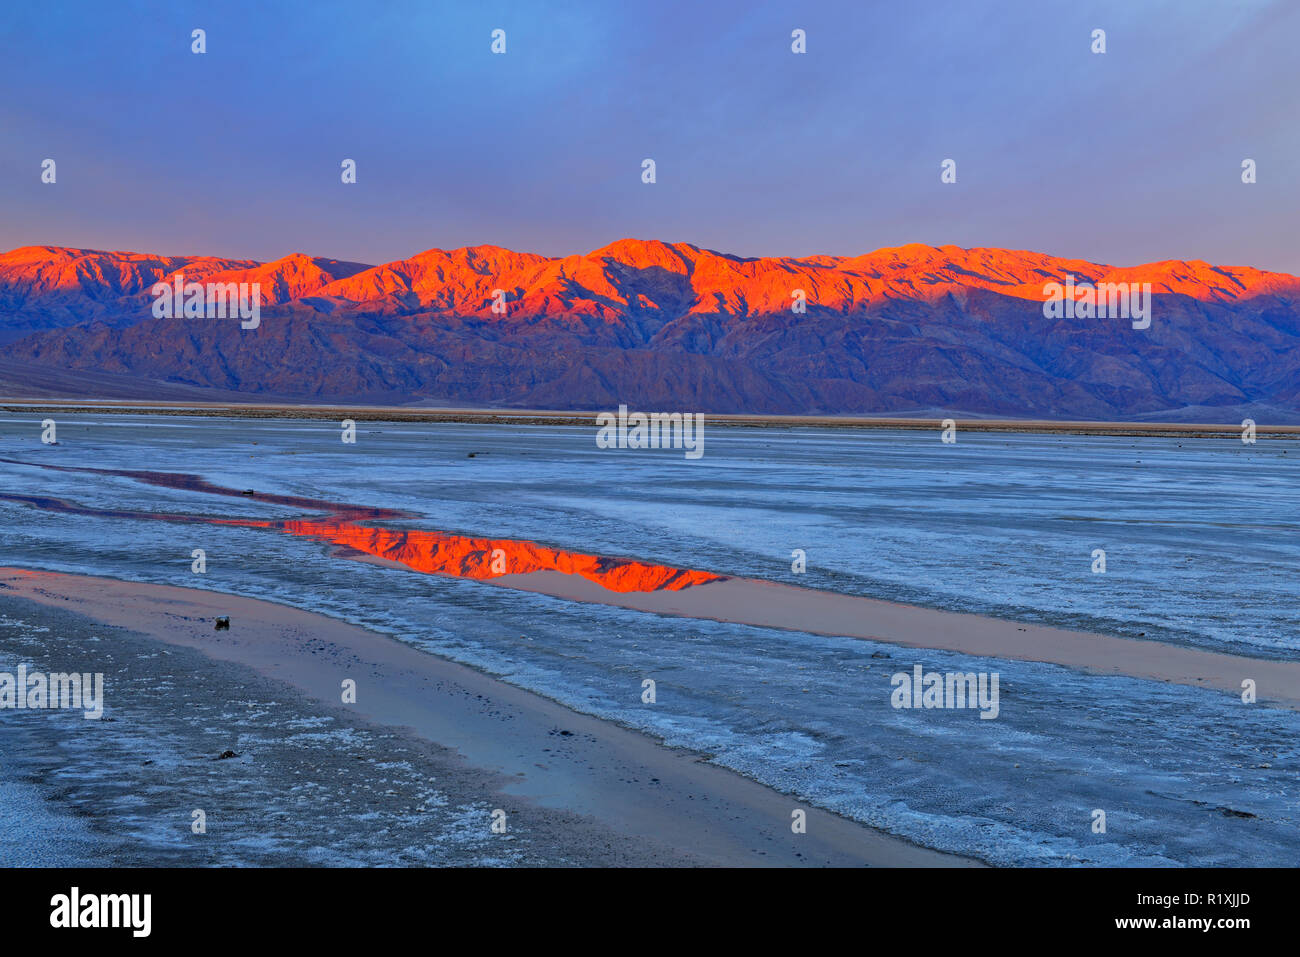 Cottonball Basin salt flats, channels and Panamint Mountains at sunrise, Death Valley National Park, California, USA Stock Photo